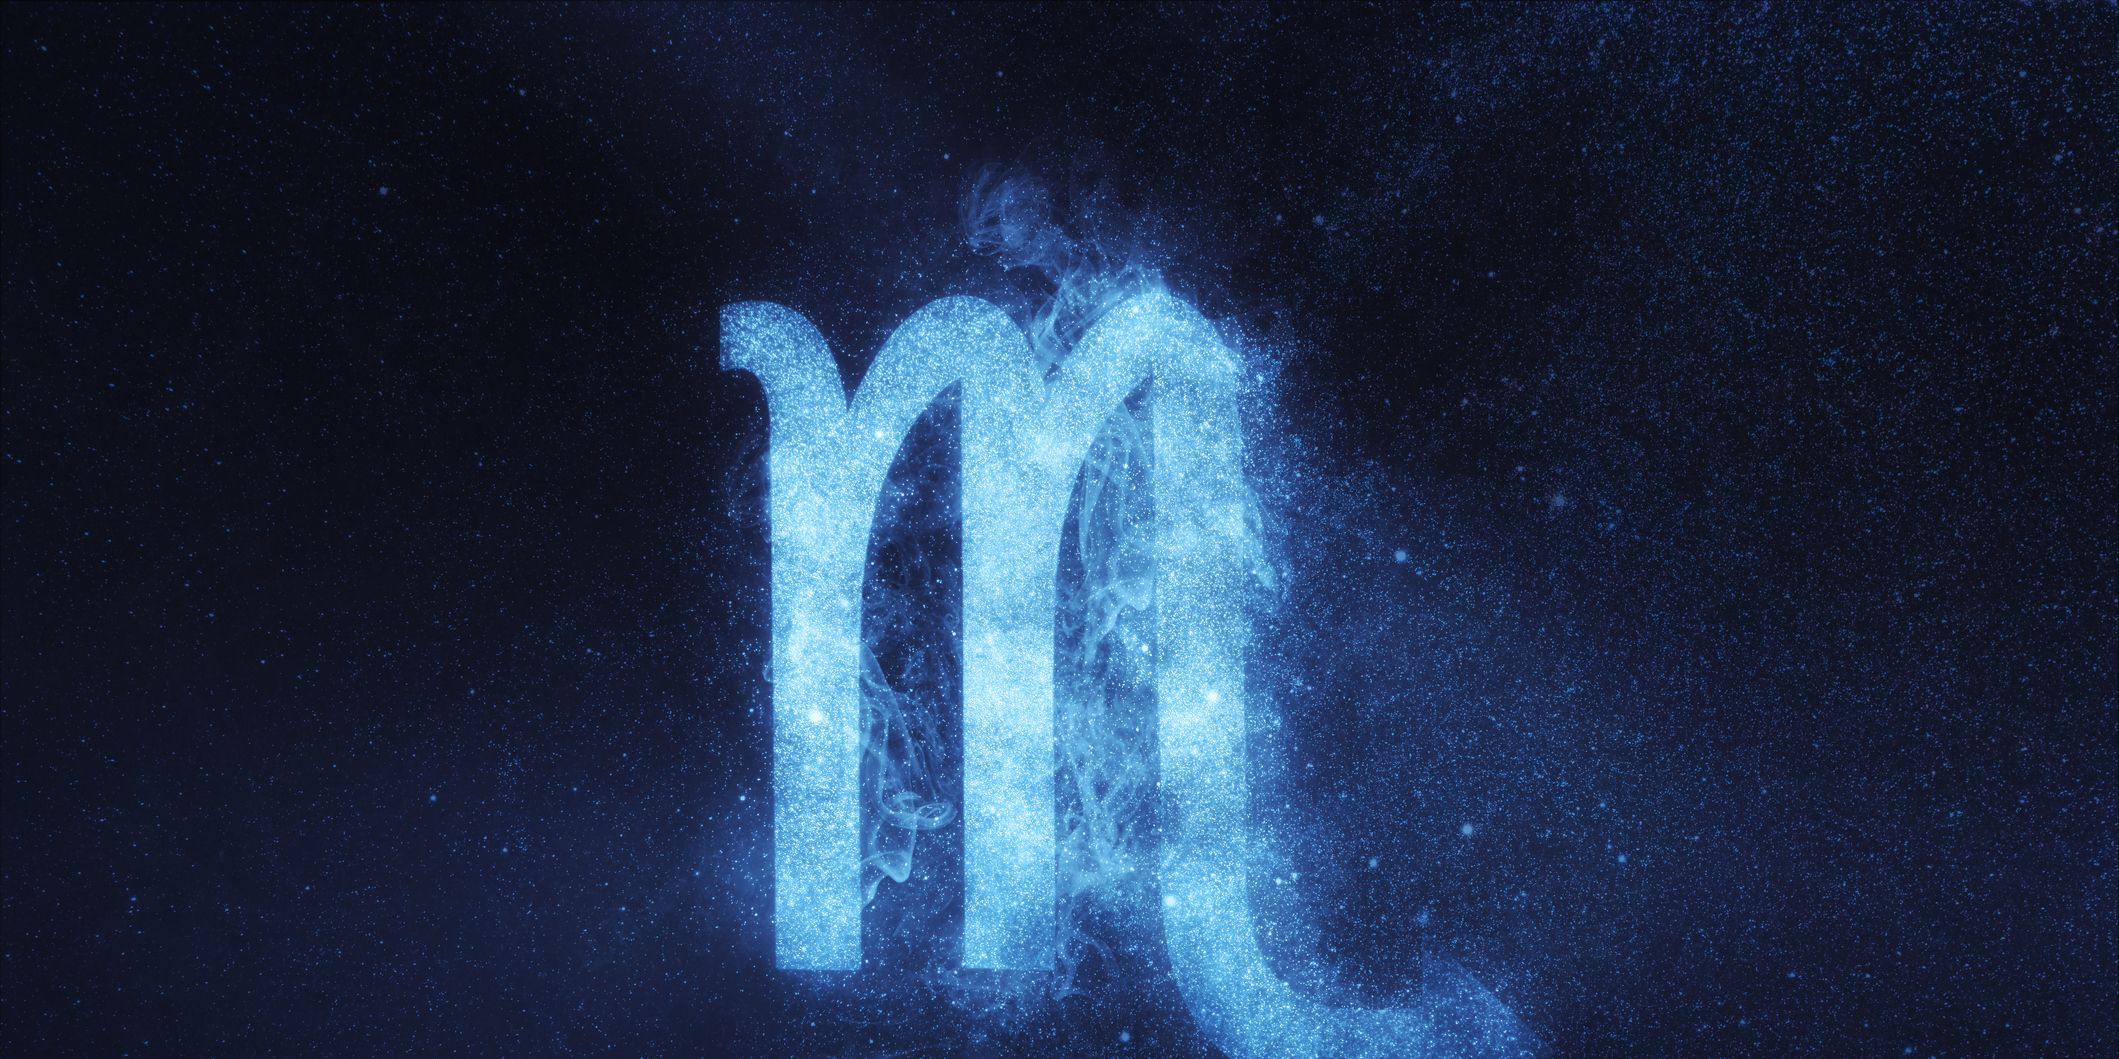 Scorpio Zodiac Sign. Abstract night sky background